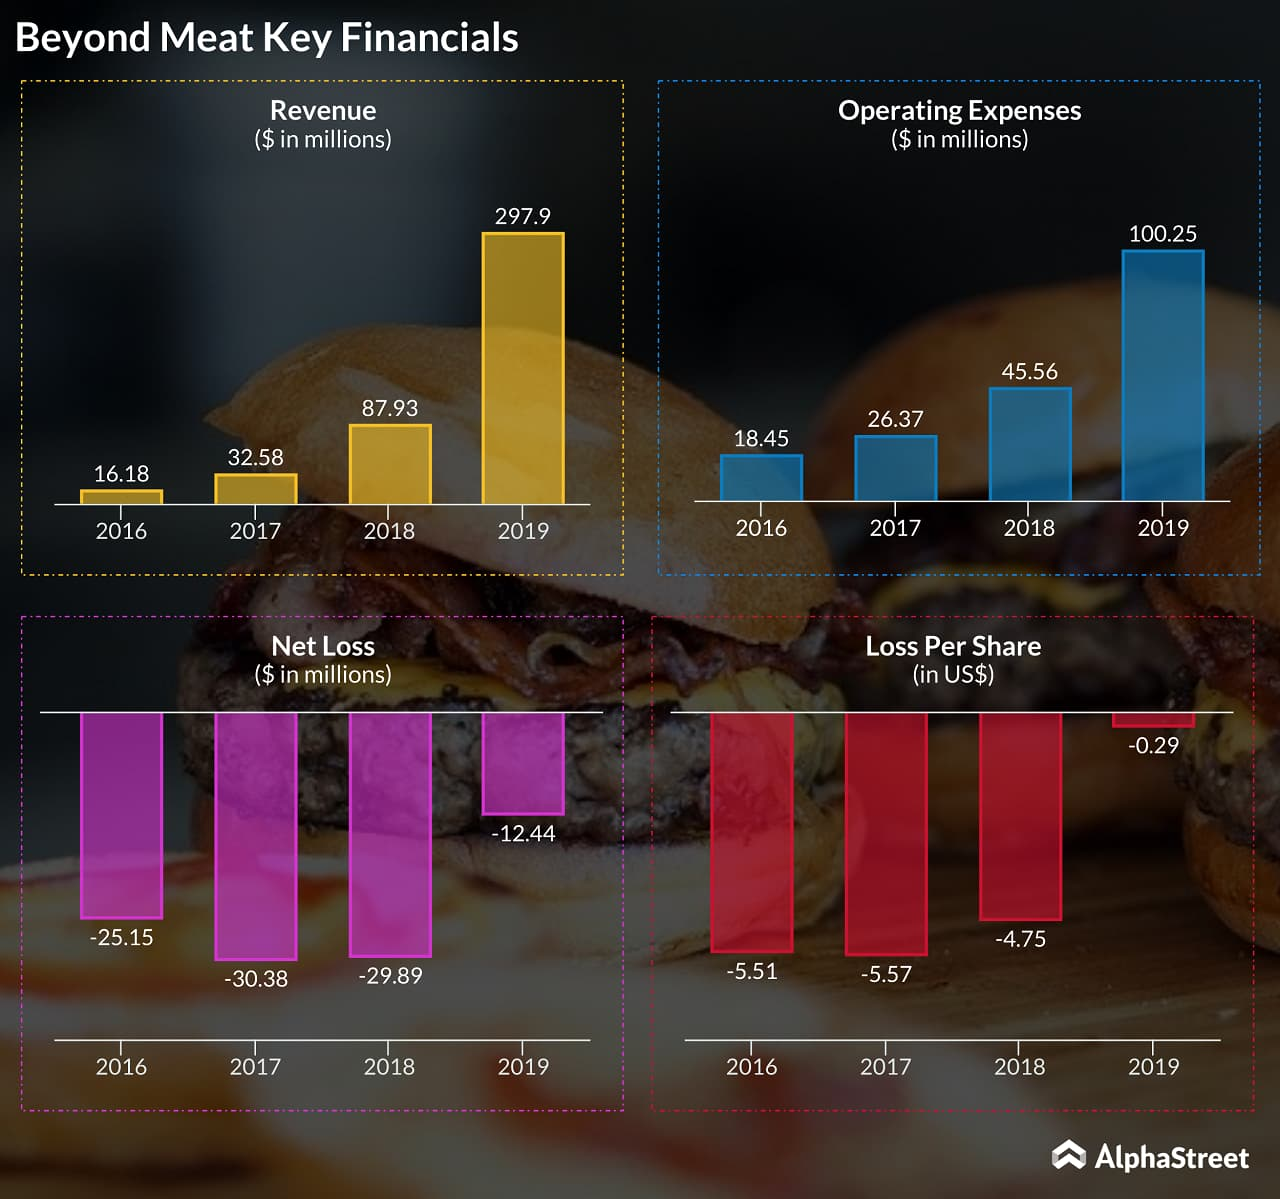 Beyond Meat (BYND) stock - Merits and potential risks - Key Financials